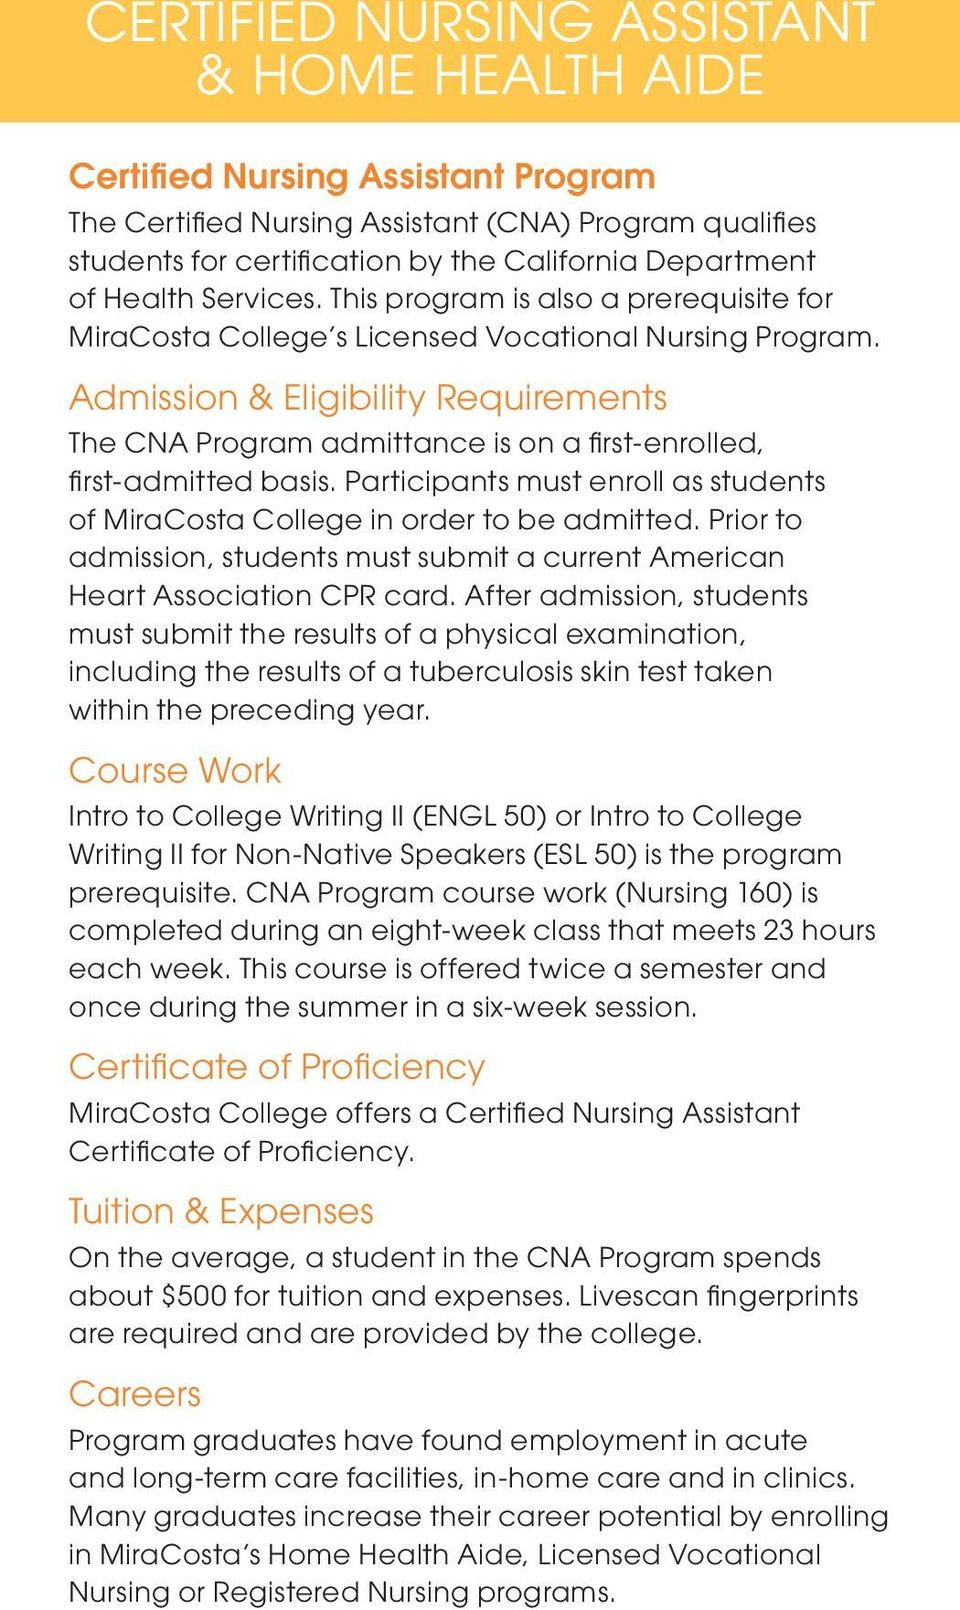 Admission & Eligibility Requirements The CNA Program admittance is on a first-enrolled, first-admitted basis. Participants must enroll as students of MiraCosta College in order to be admitted.